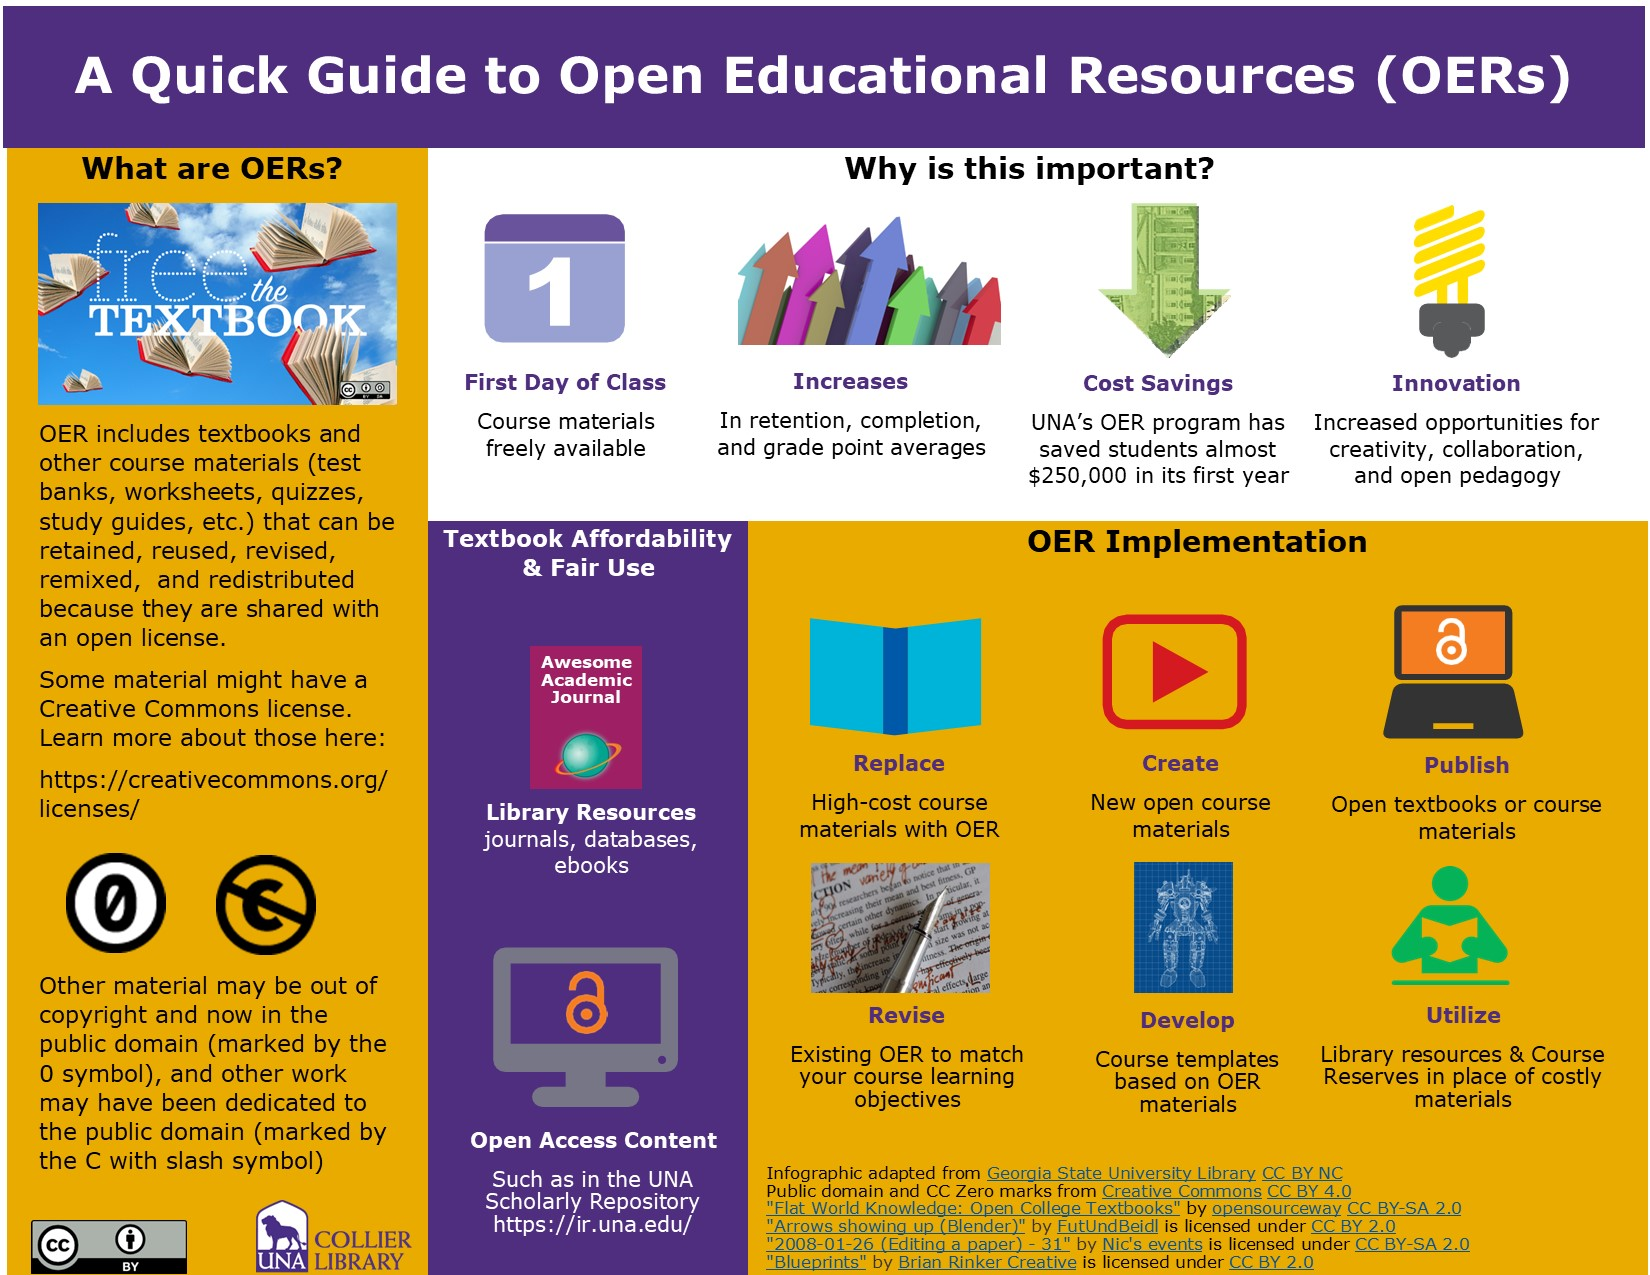 OER Infographic